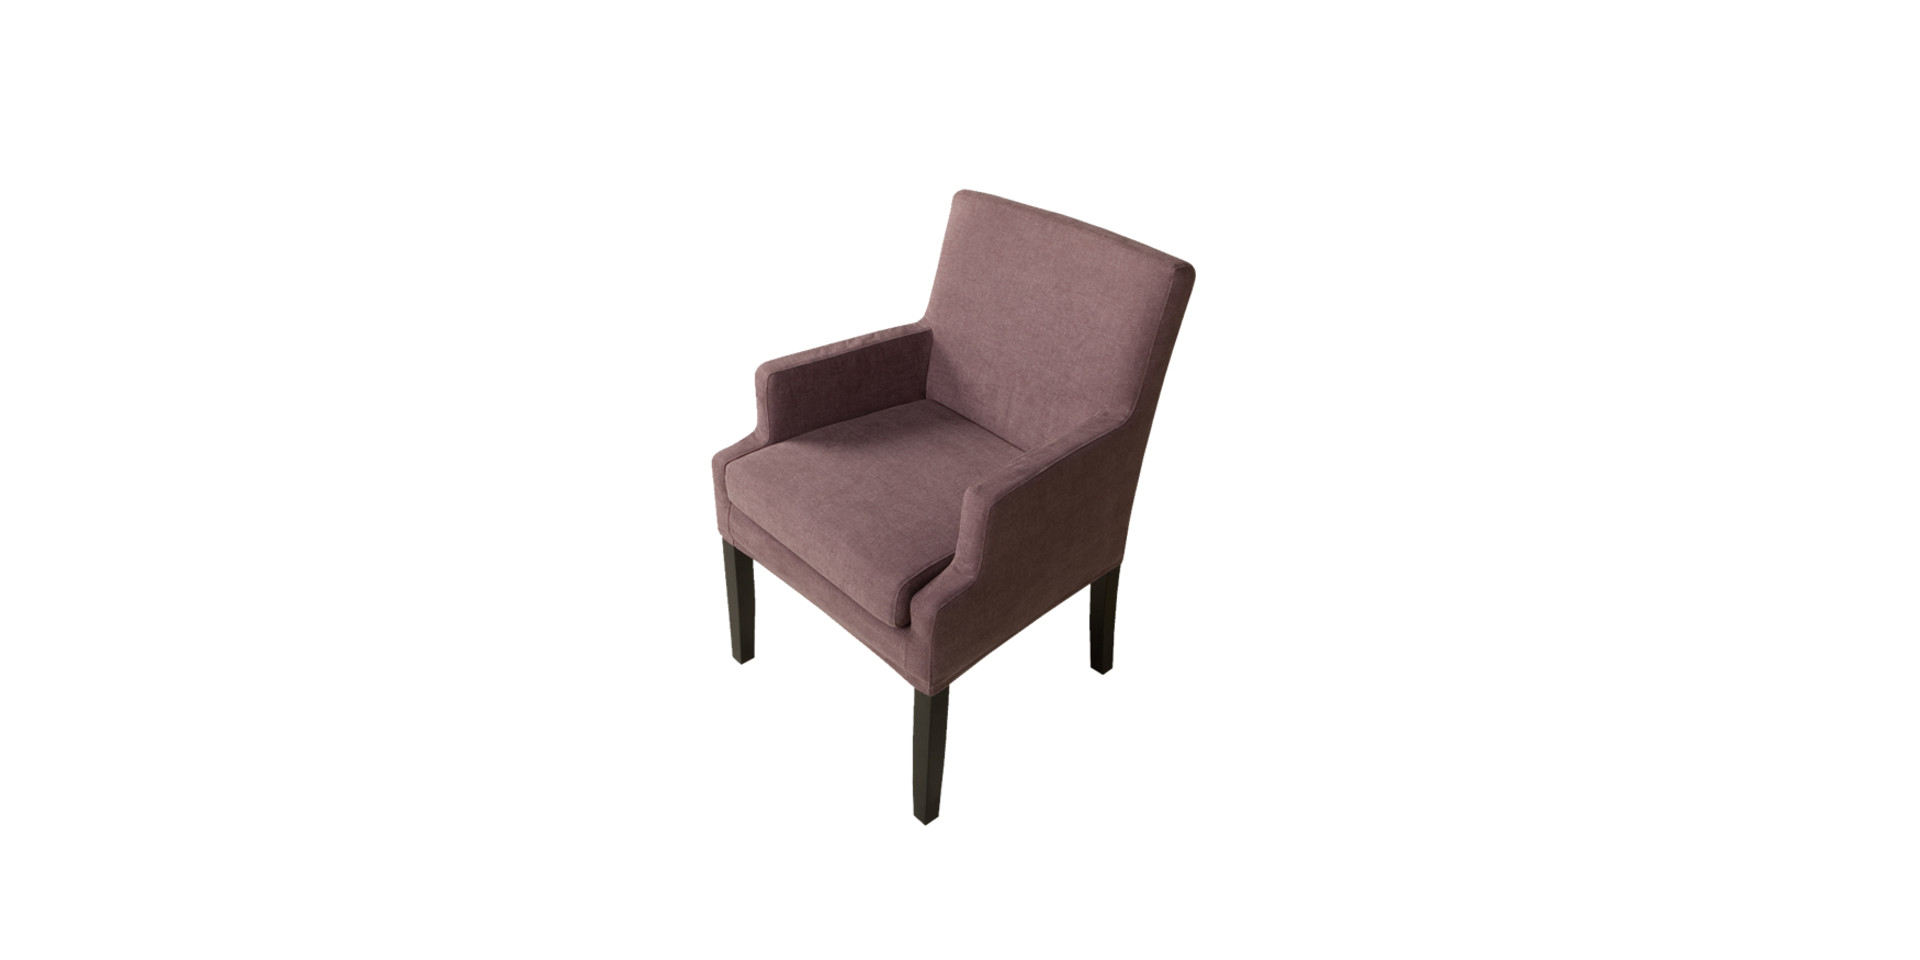 sits-merlin-fauteuil-chair_brest116_plum_5